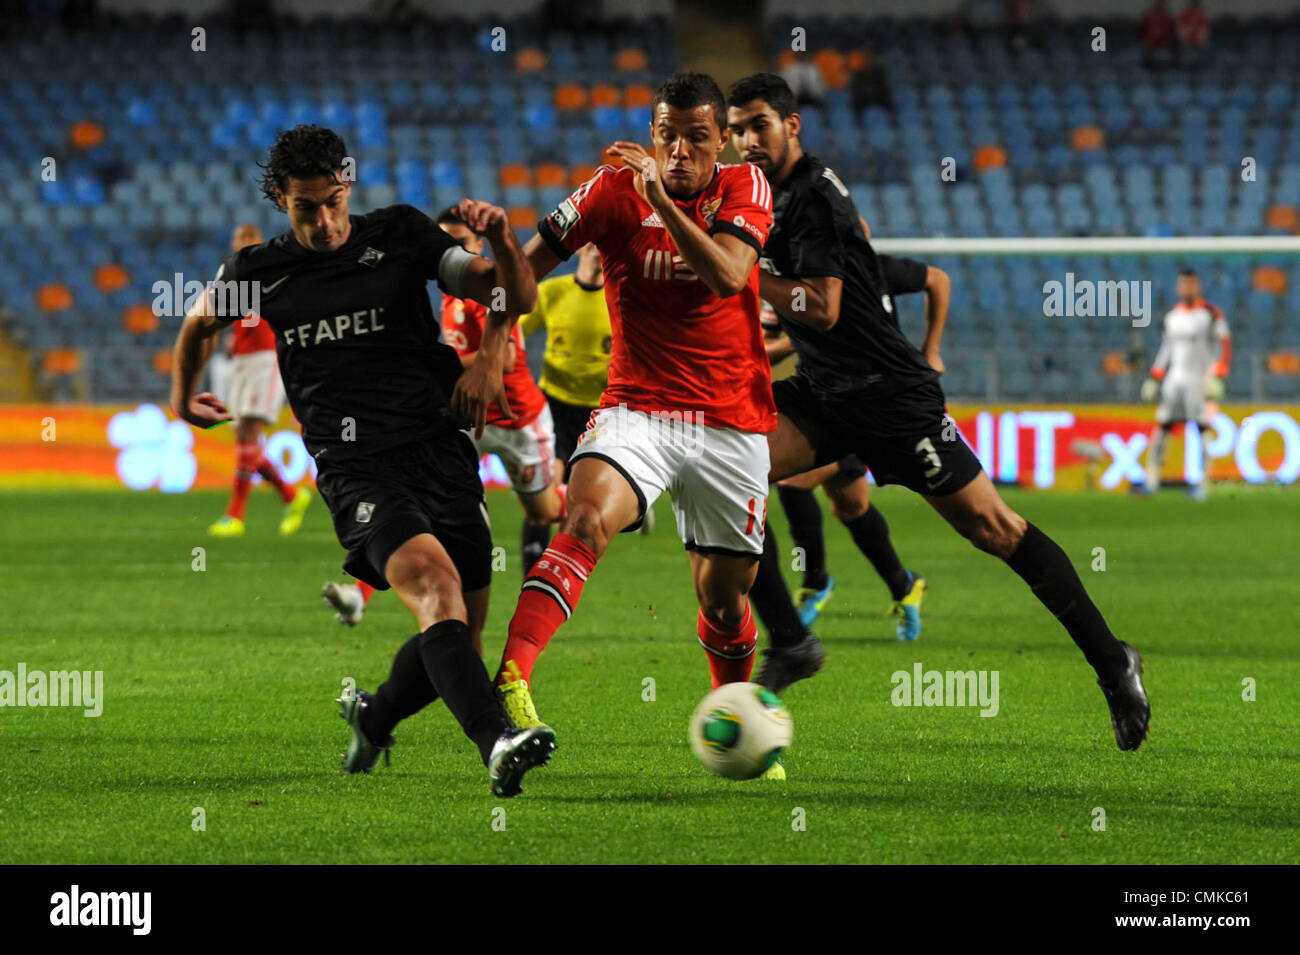 Benfica's Brazillian striker Lima vies for the ball with Academica defender João Real during the portuguese - Stock Image